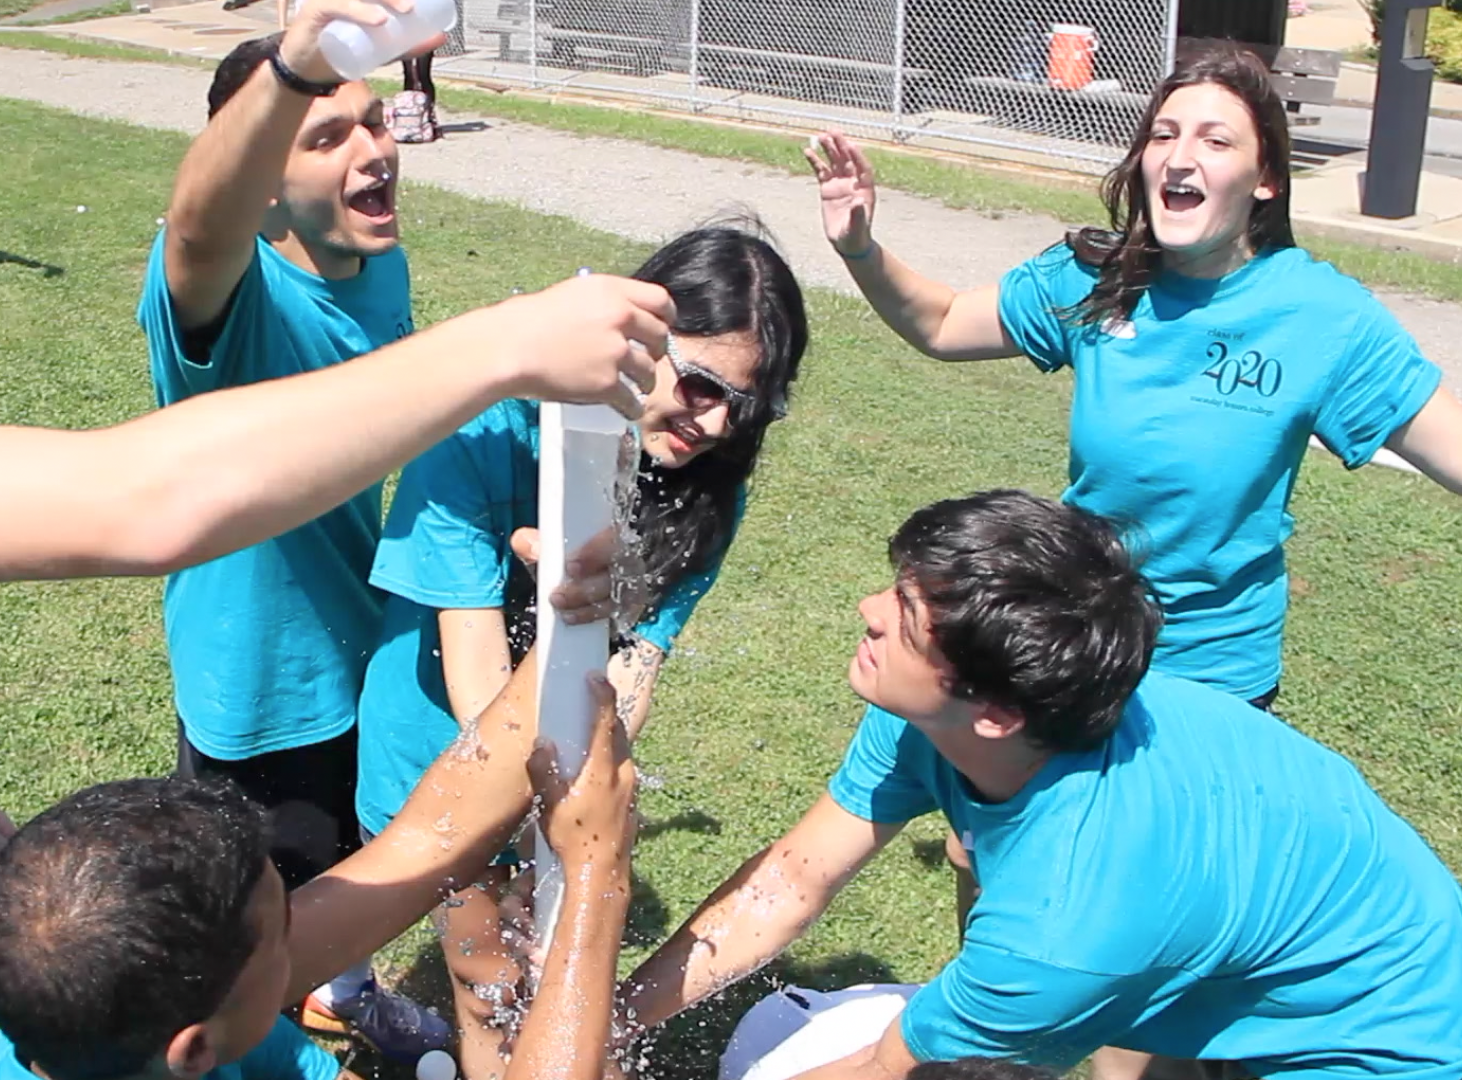 Students participating in activities at orientation